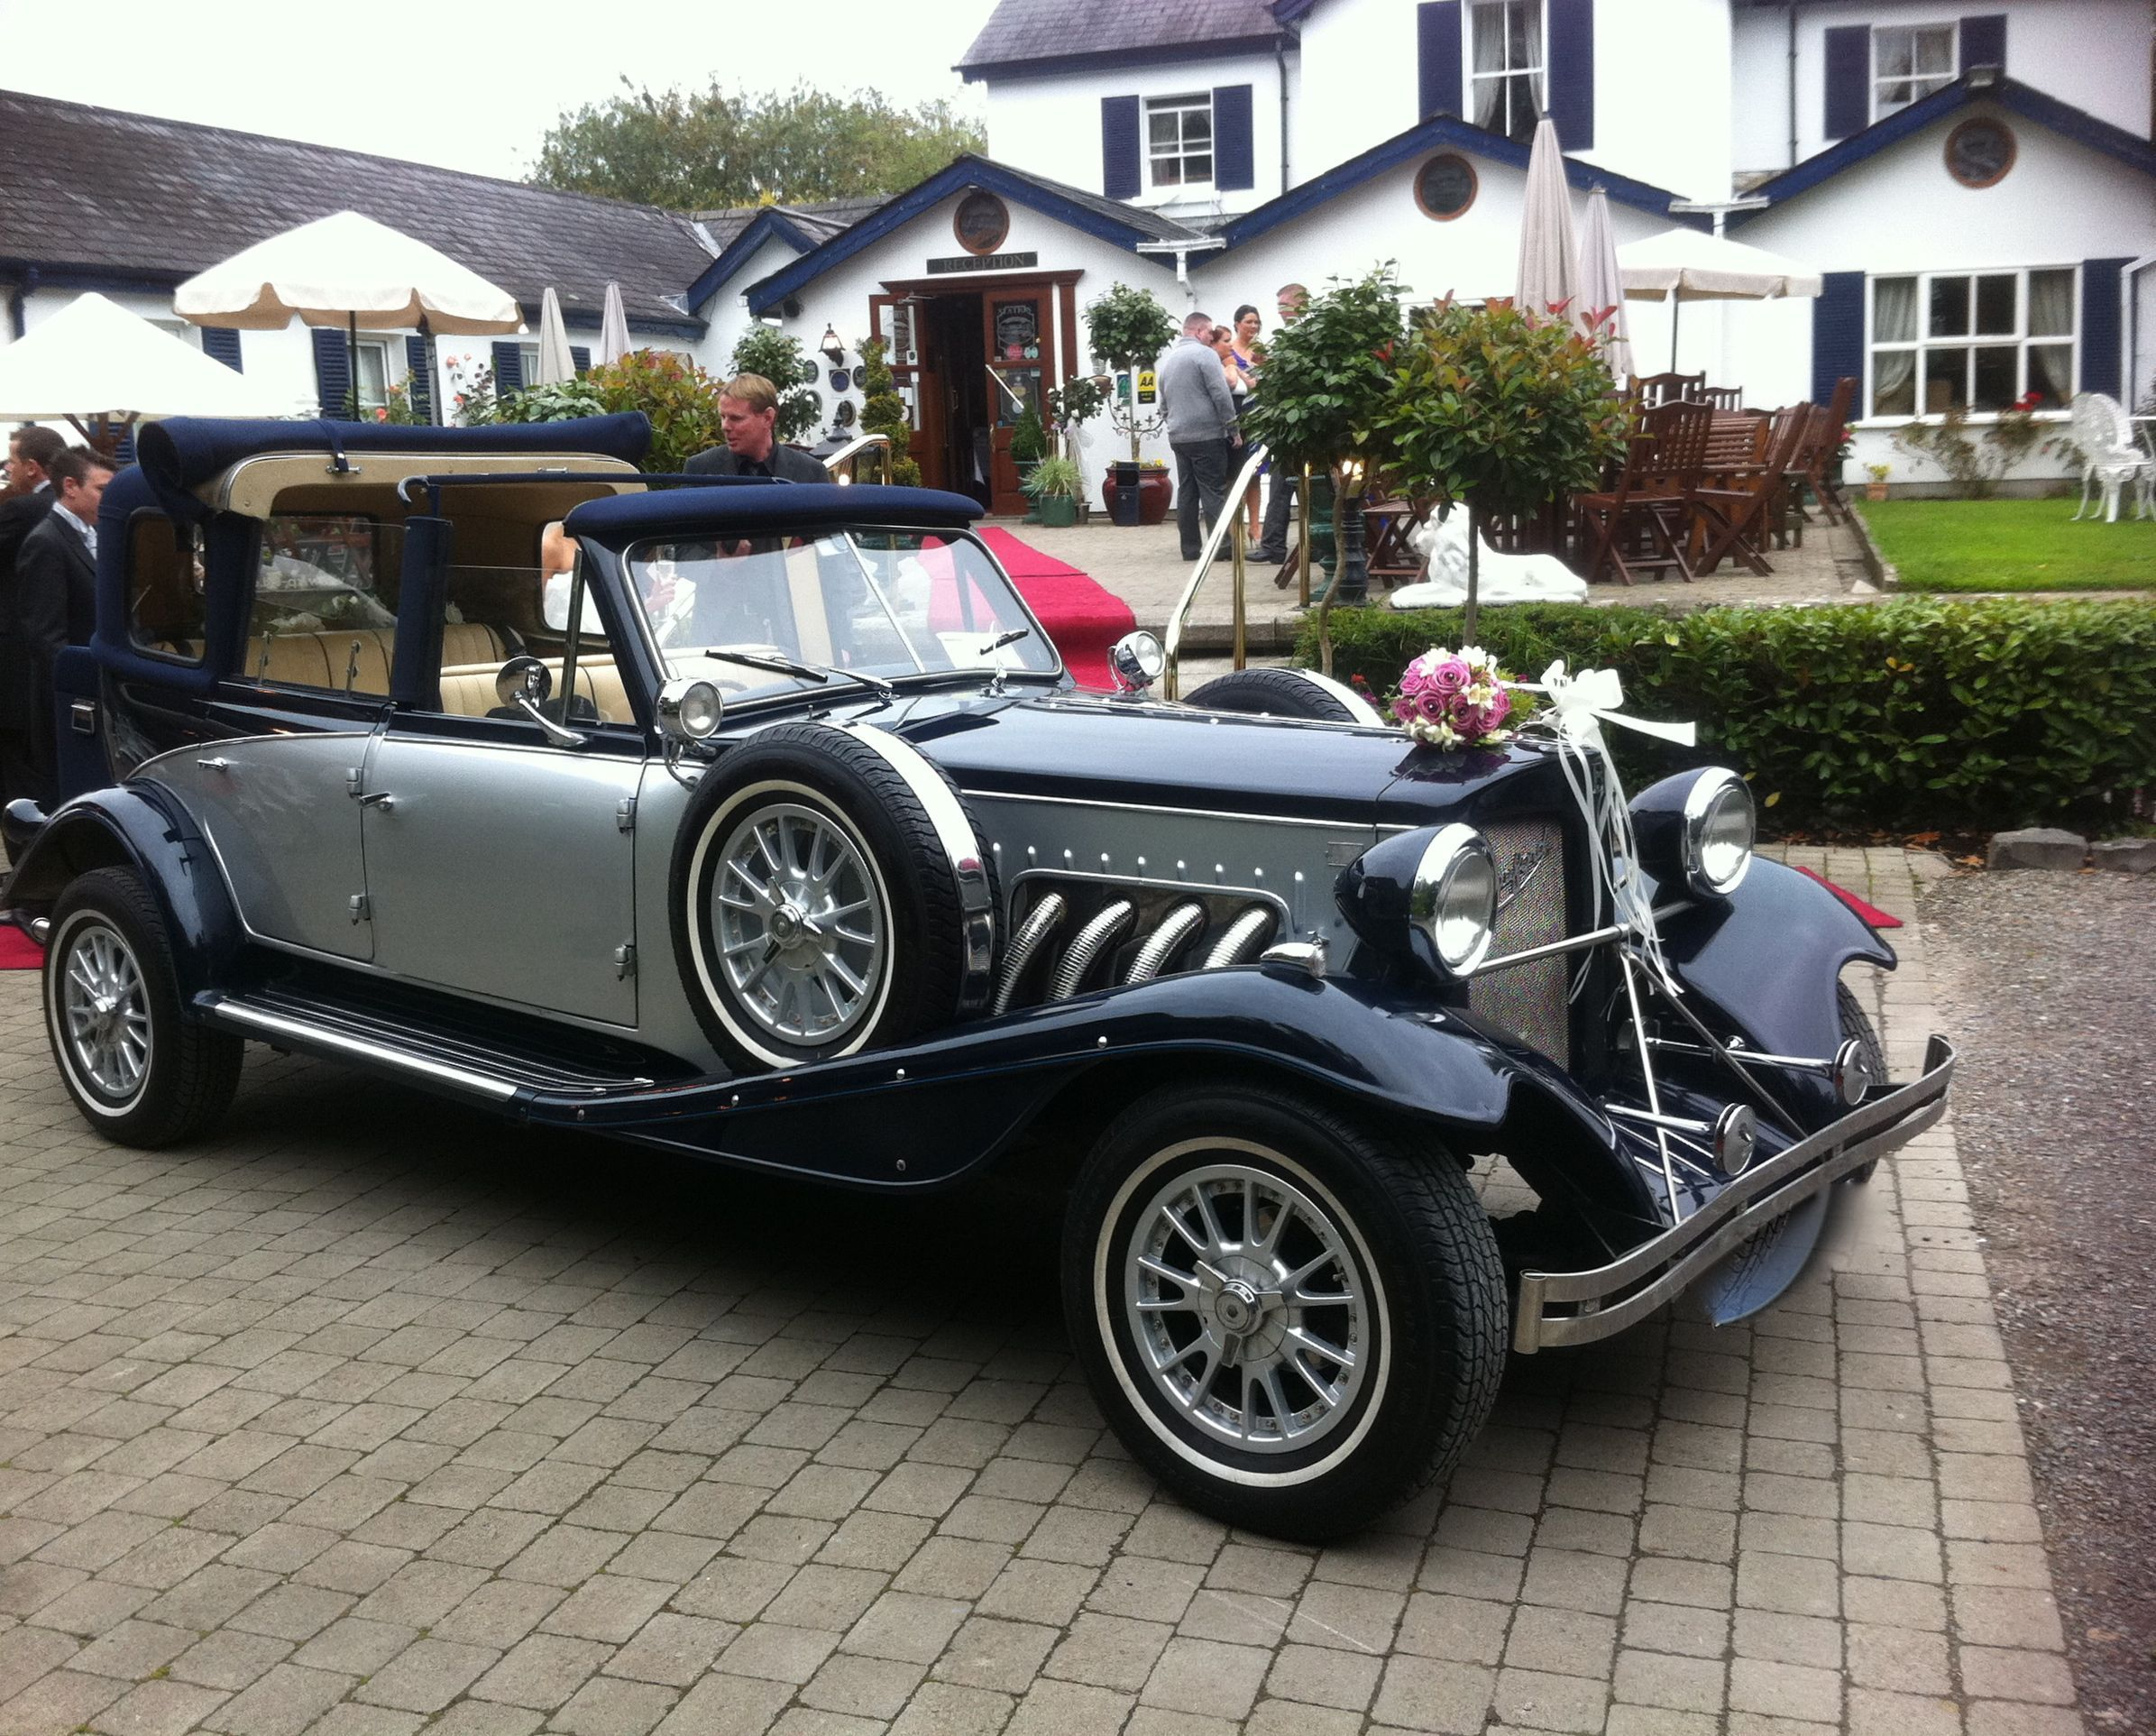 Navy & Silver Wedding Car Hire Meath http://www.kpcd.ie/navy ...